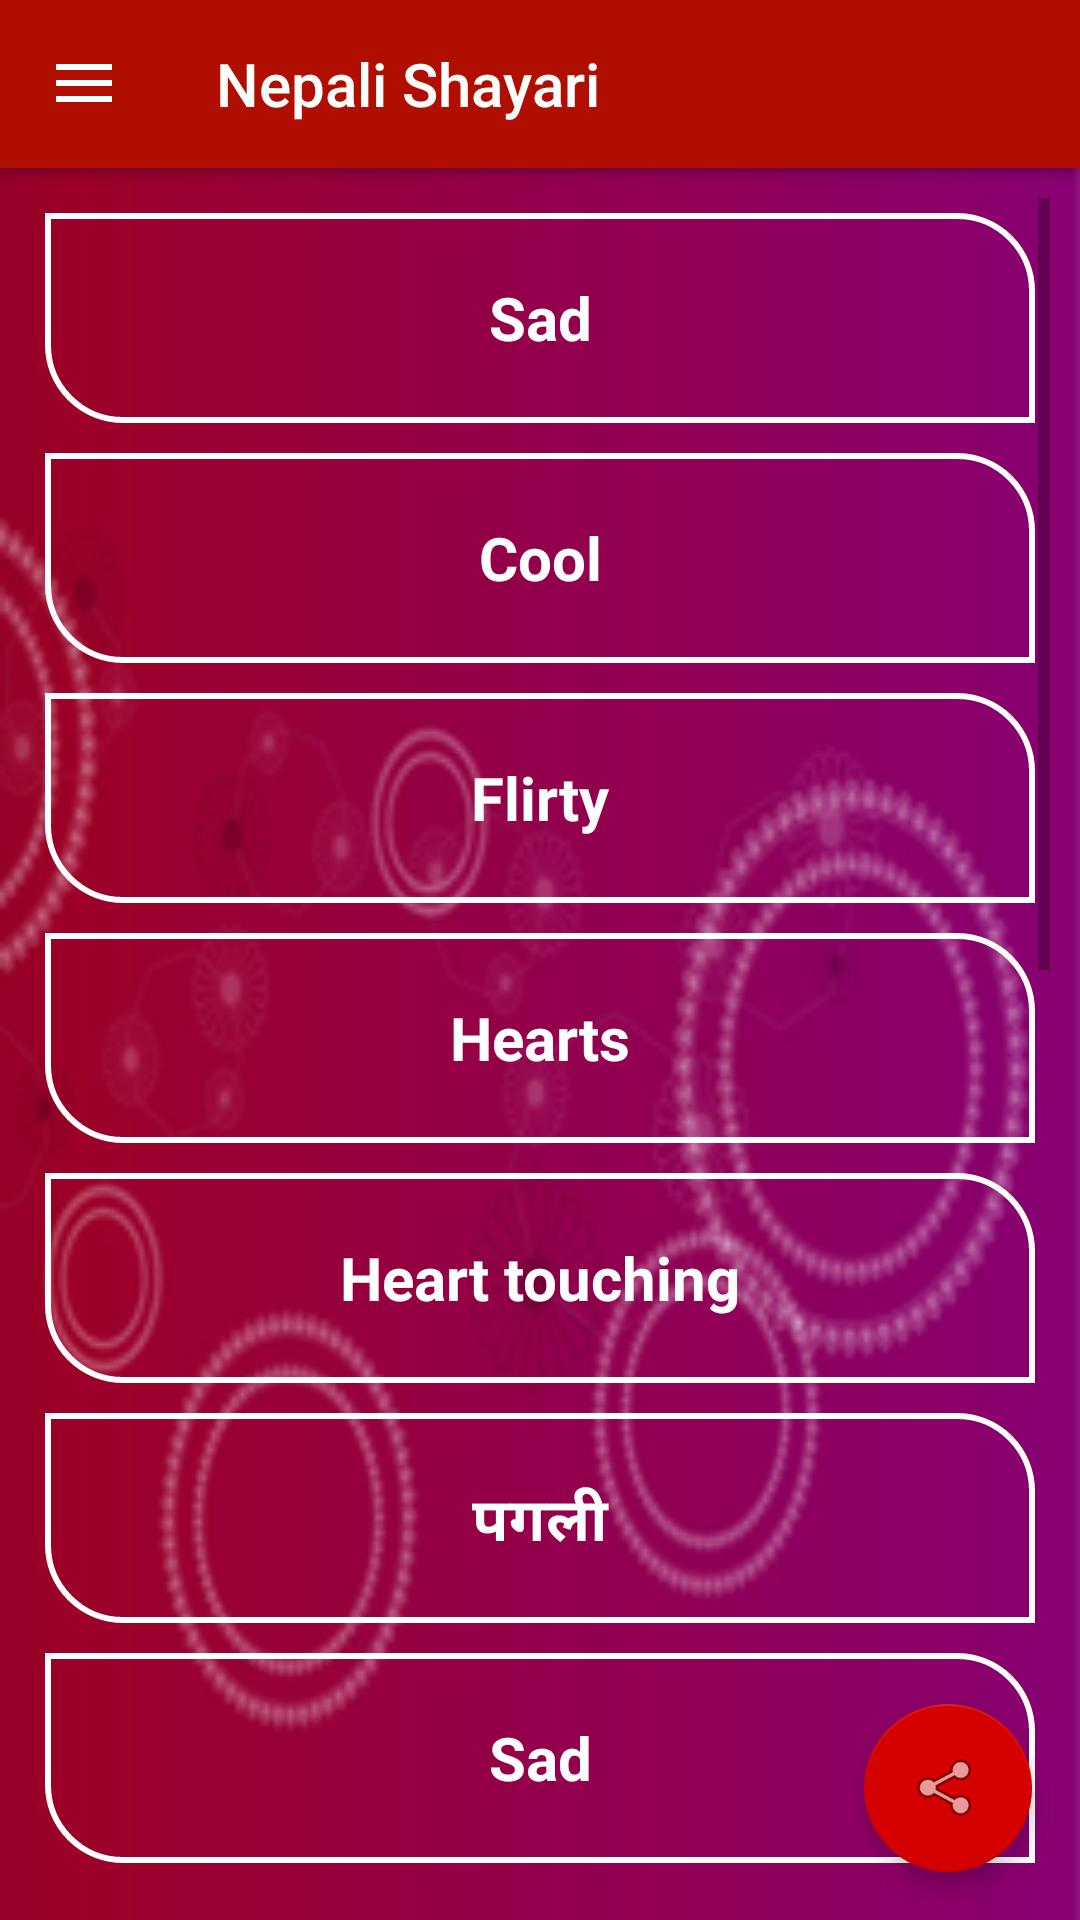 nepali love shayari for Android - APK Download